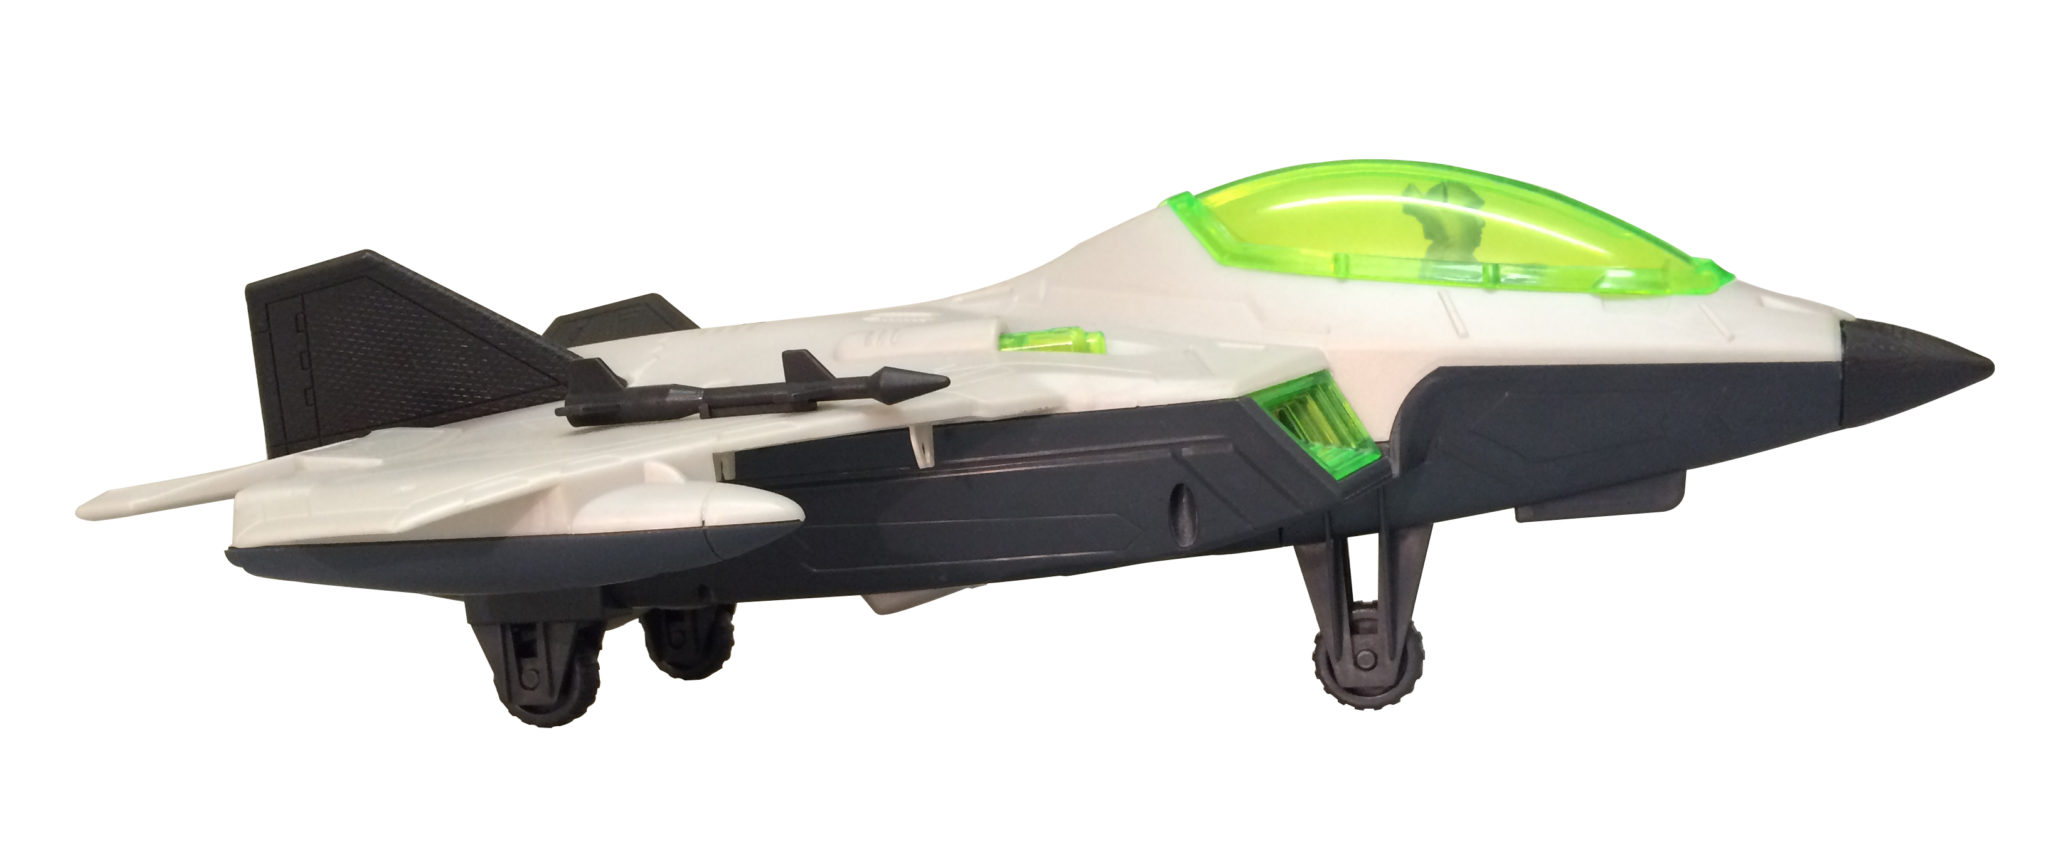 Fighter Jet Toy Side